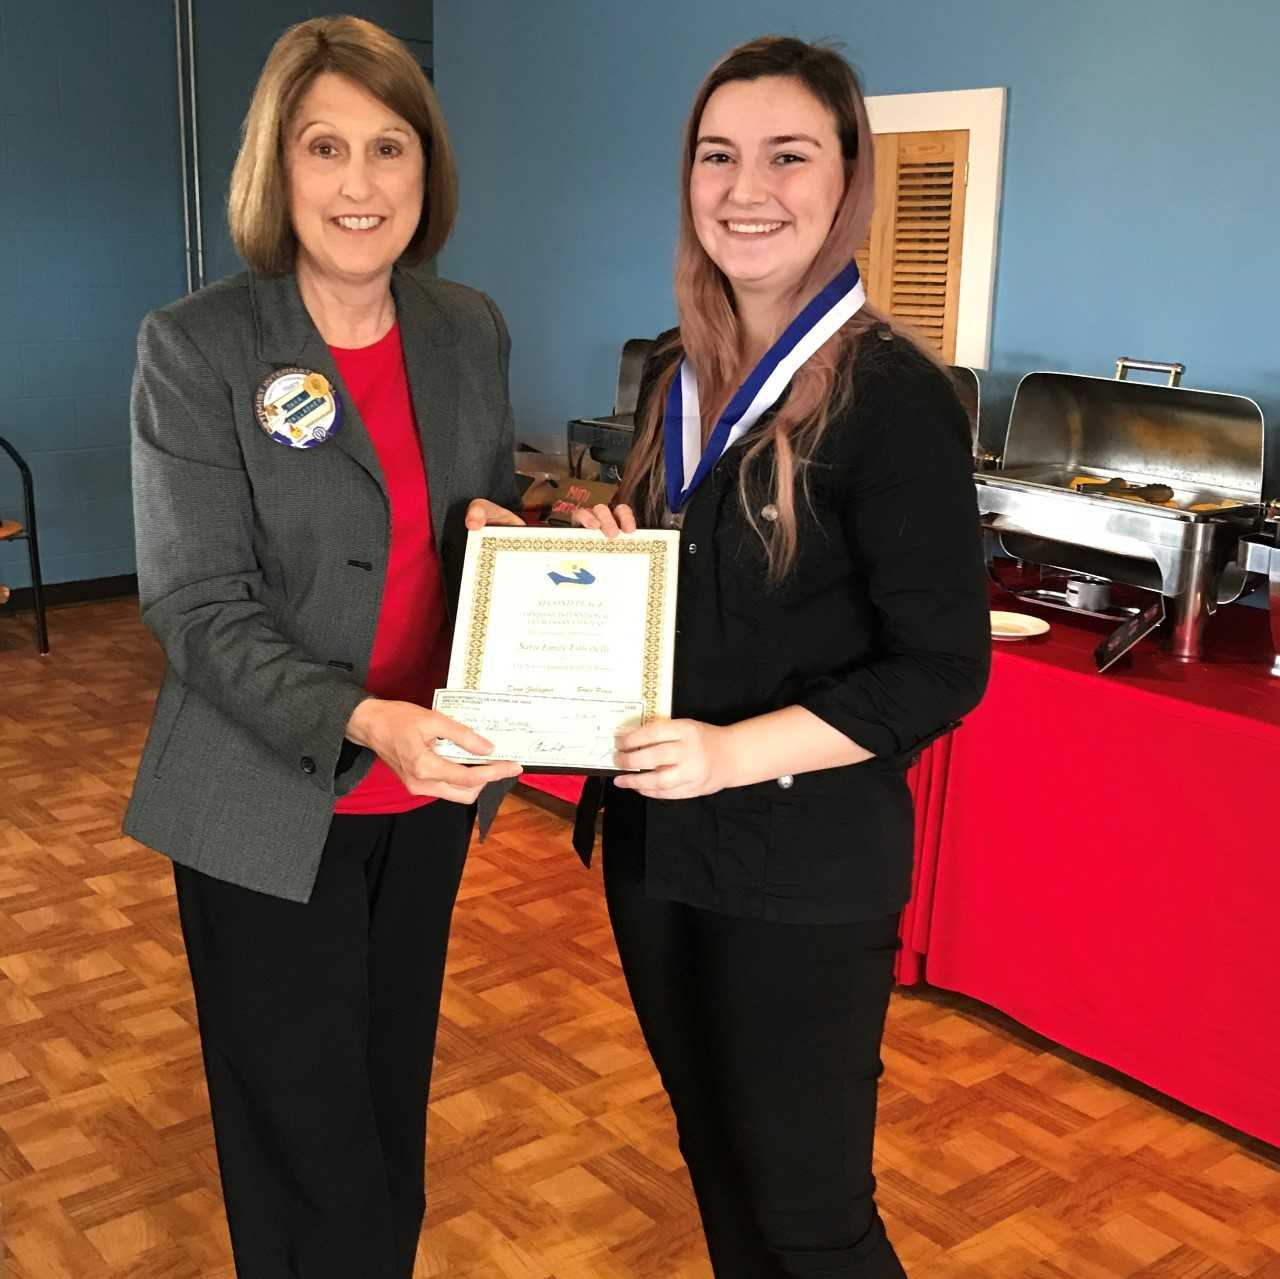 Local Model Student Wins Scholarship from Noon Optimist Club